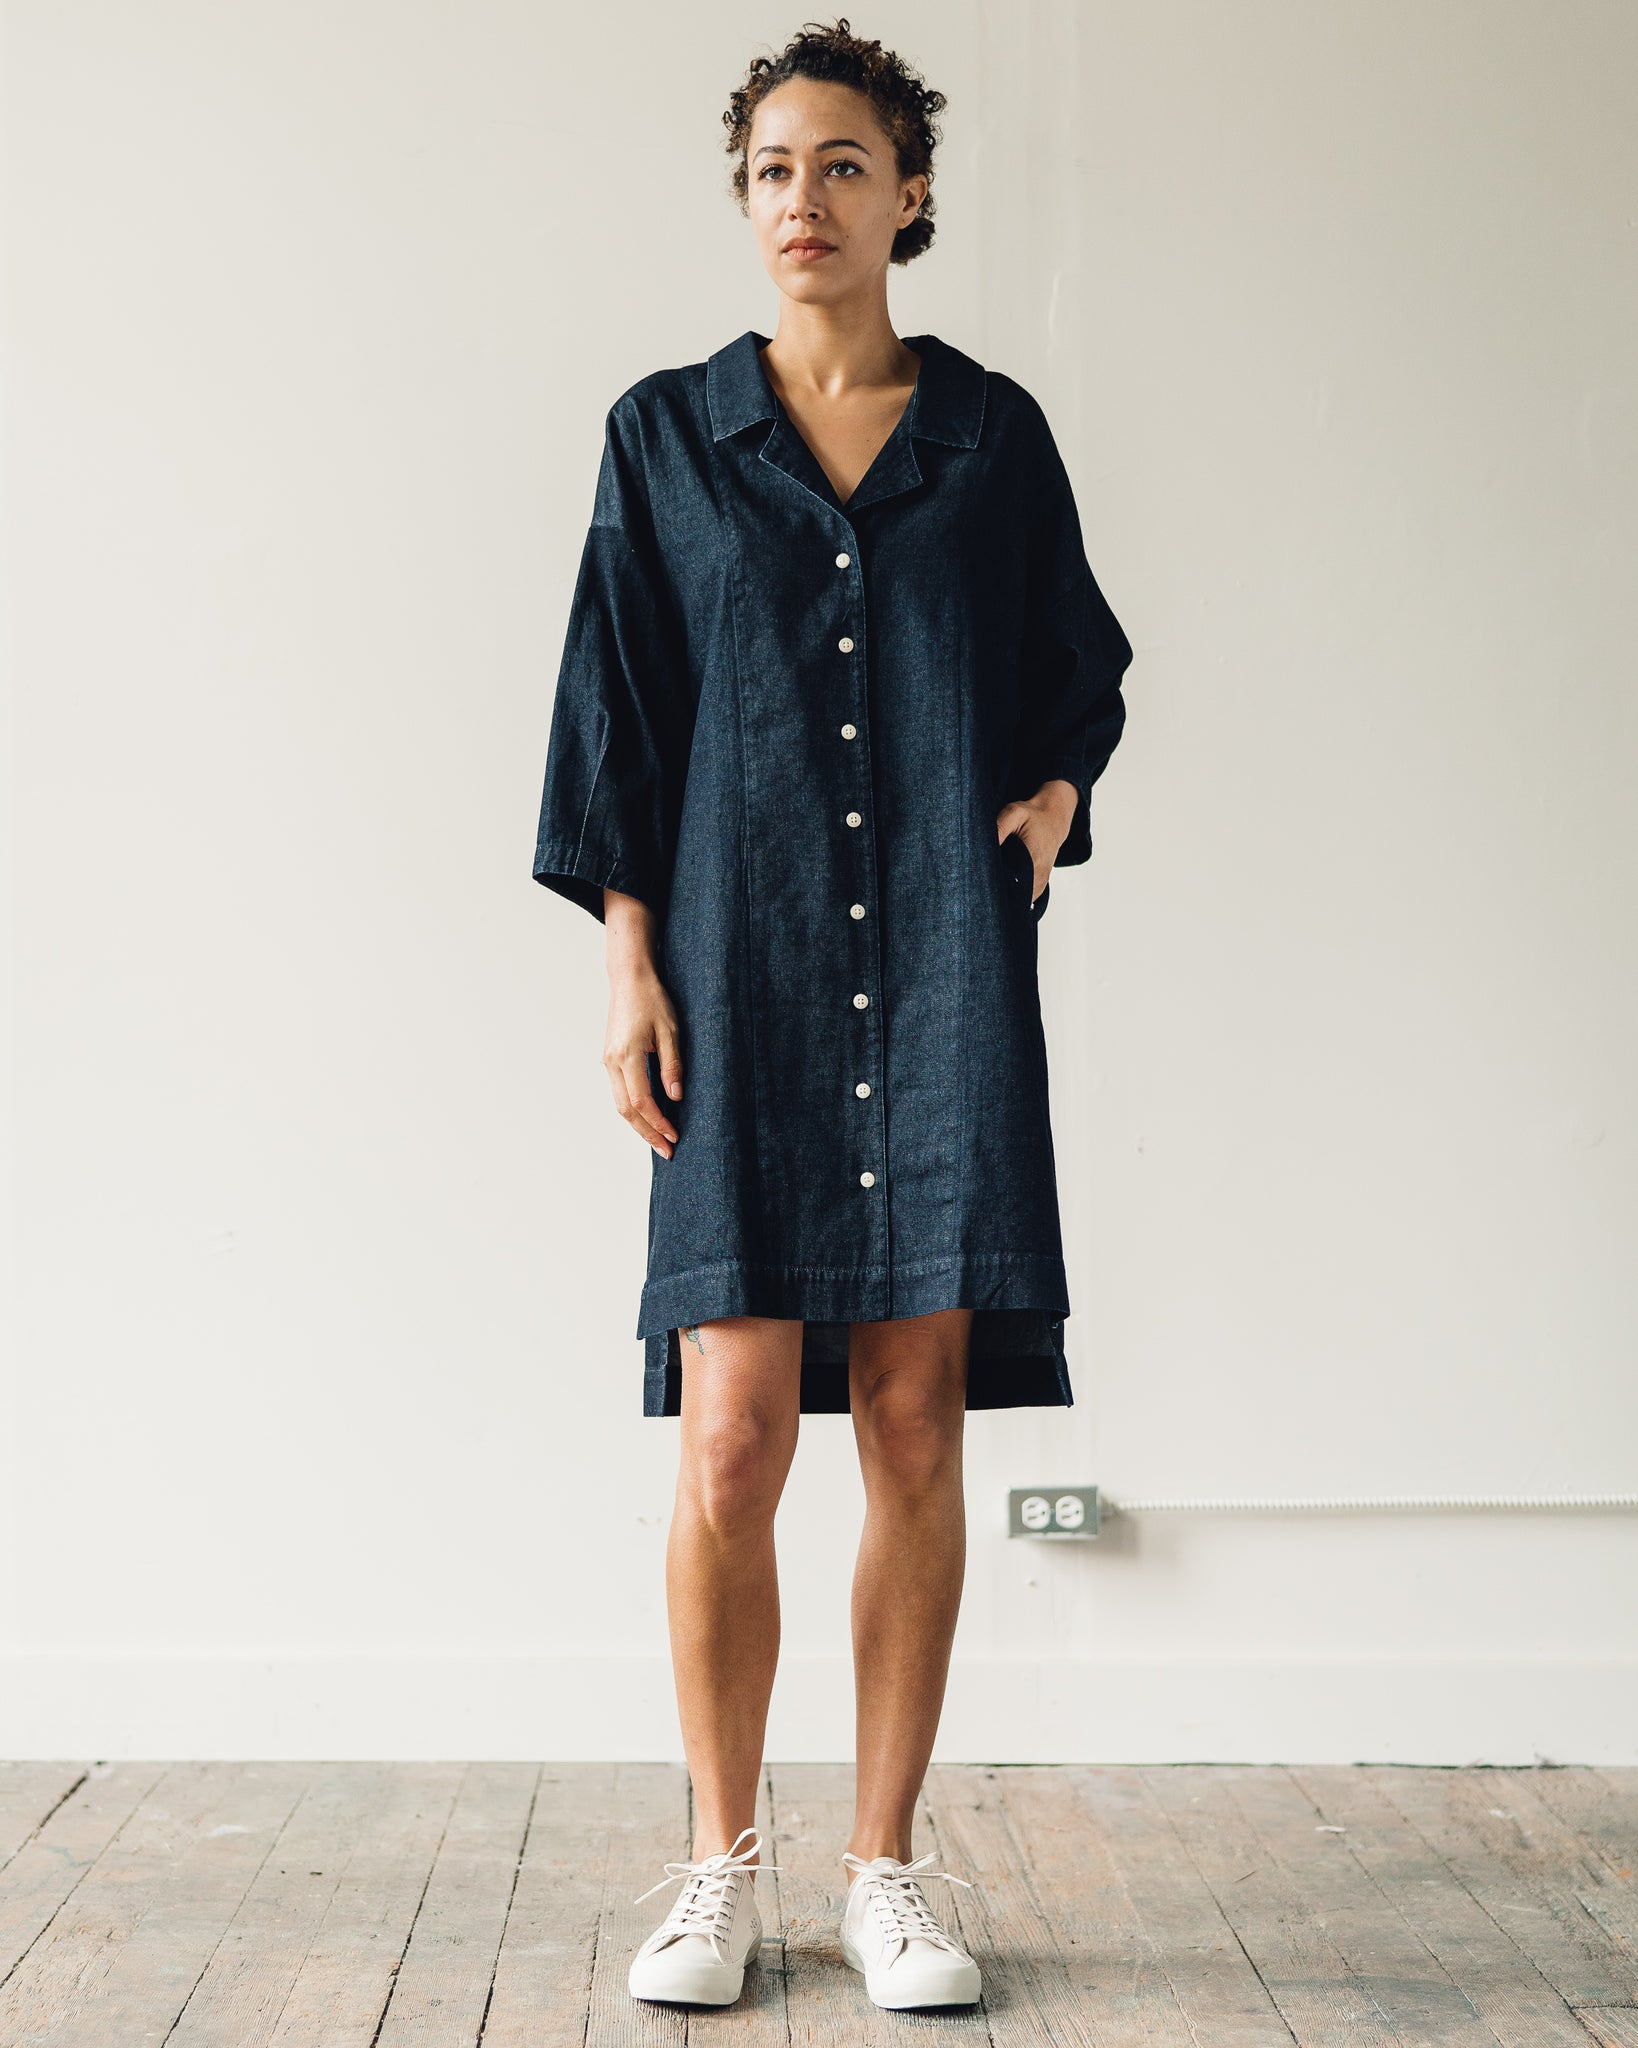 Ilana Kohn Harrison Dress, Denim